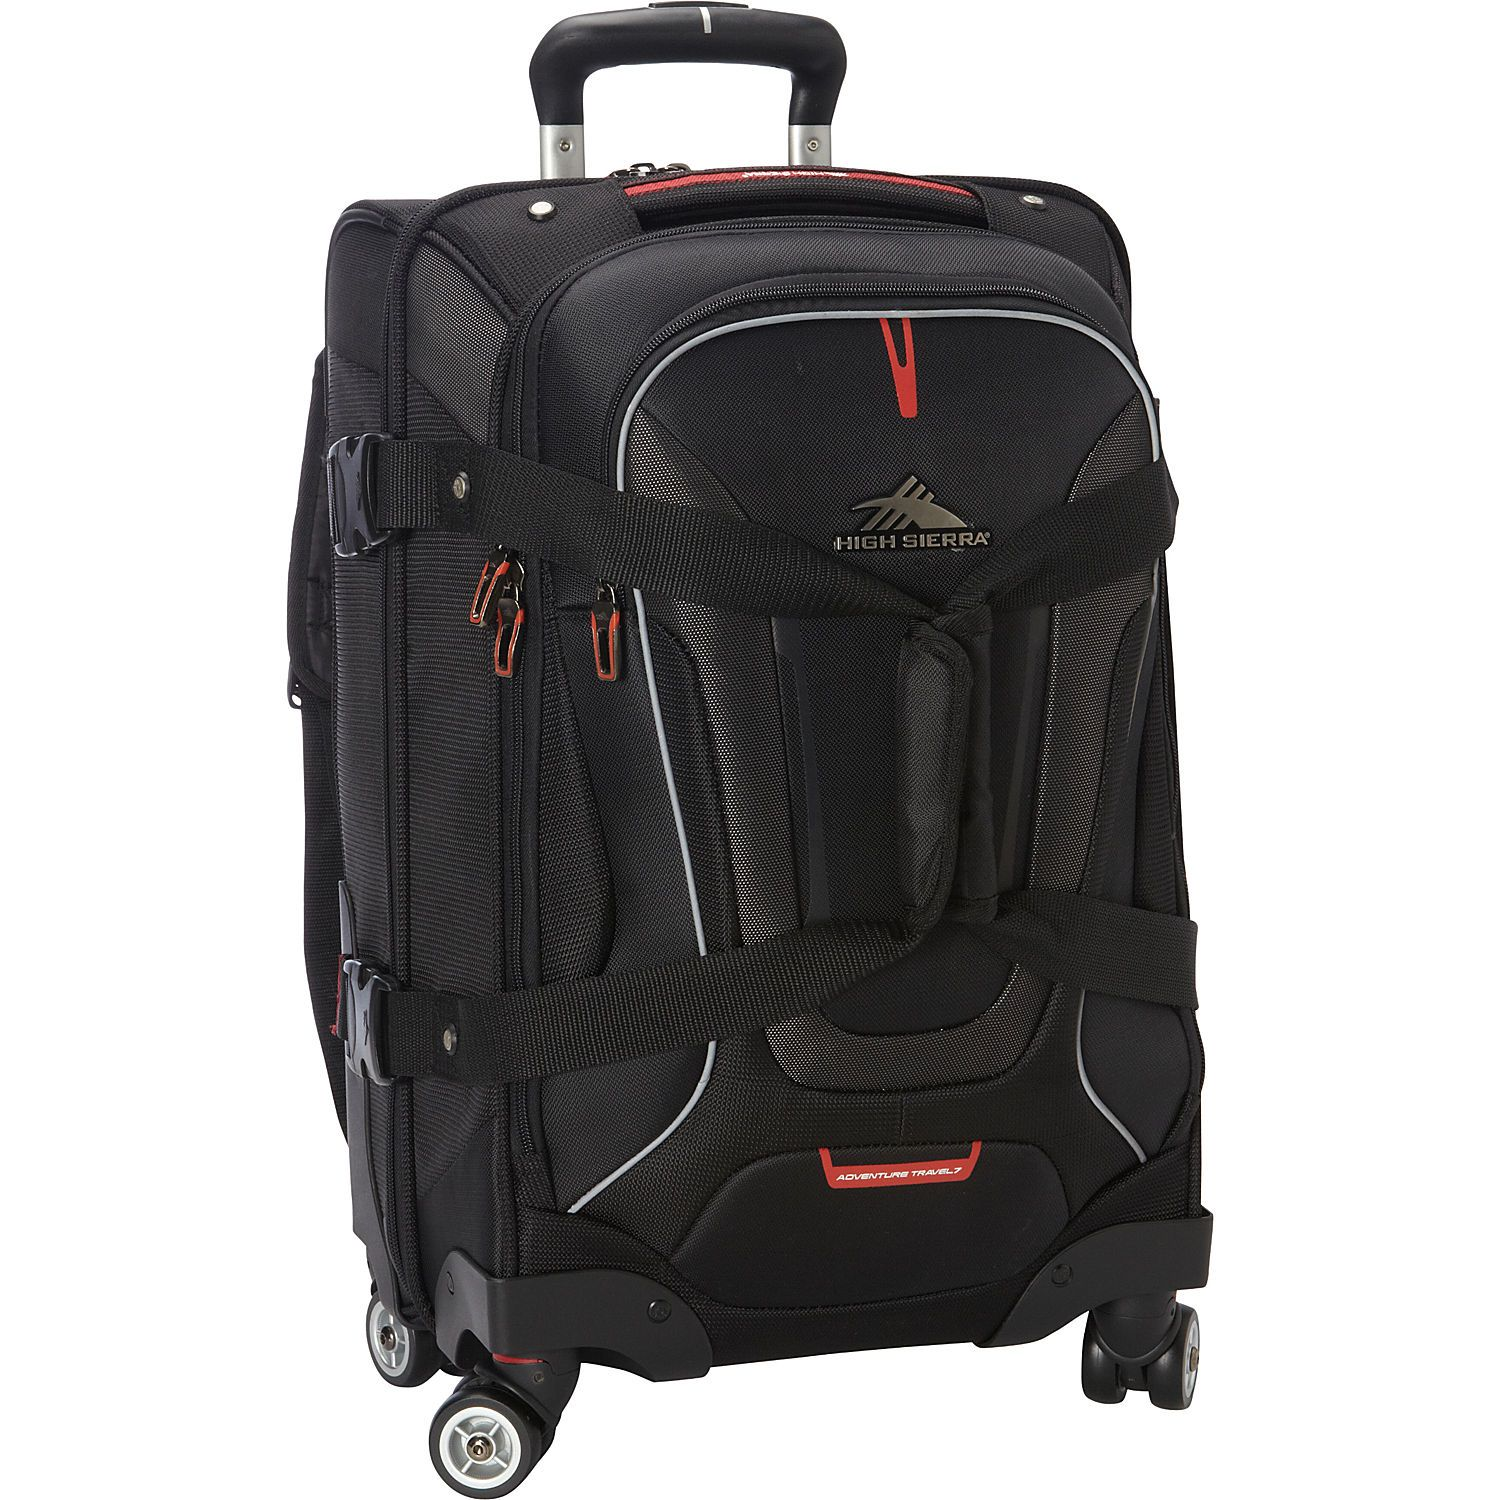 High Sierra AT7 Carryon Spinner duffel with backpack straps eBags